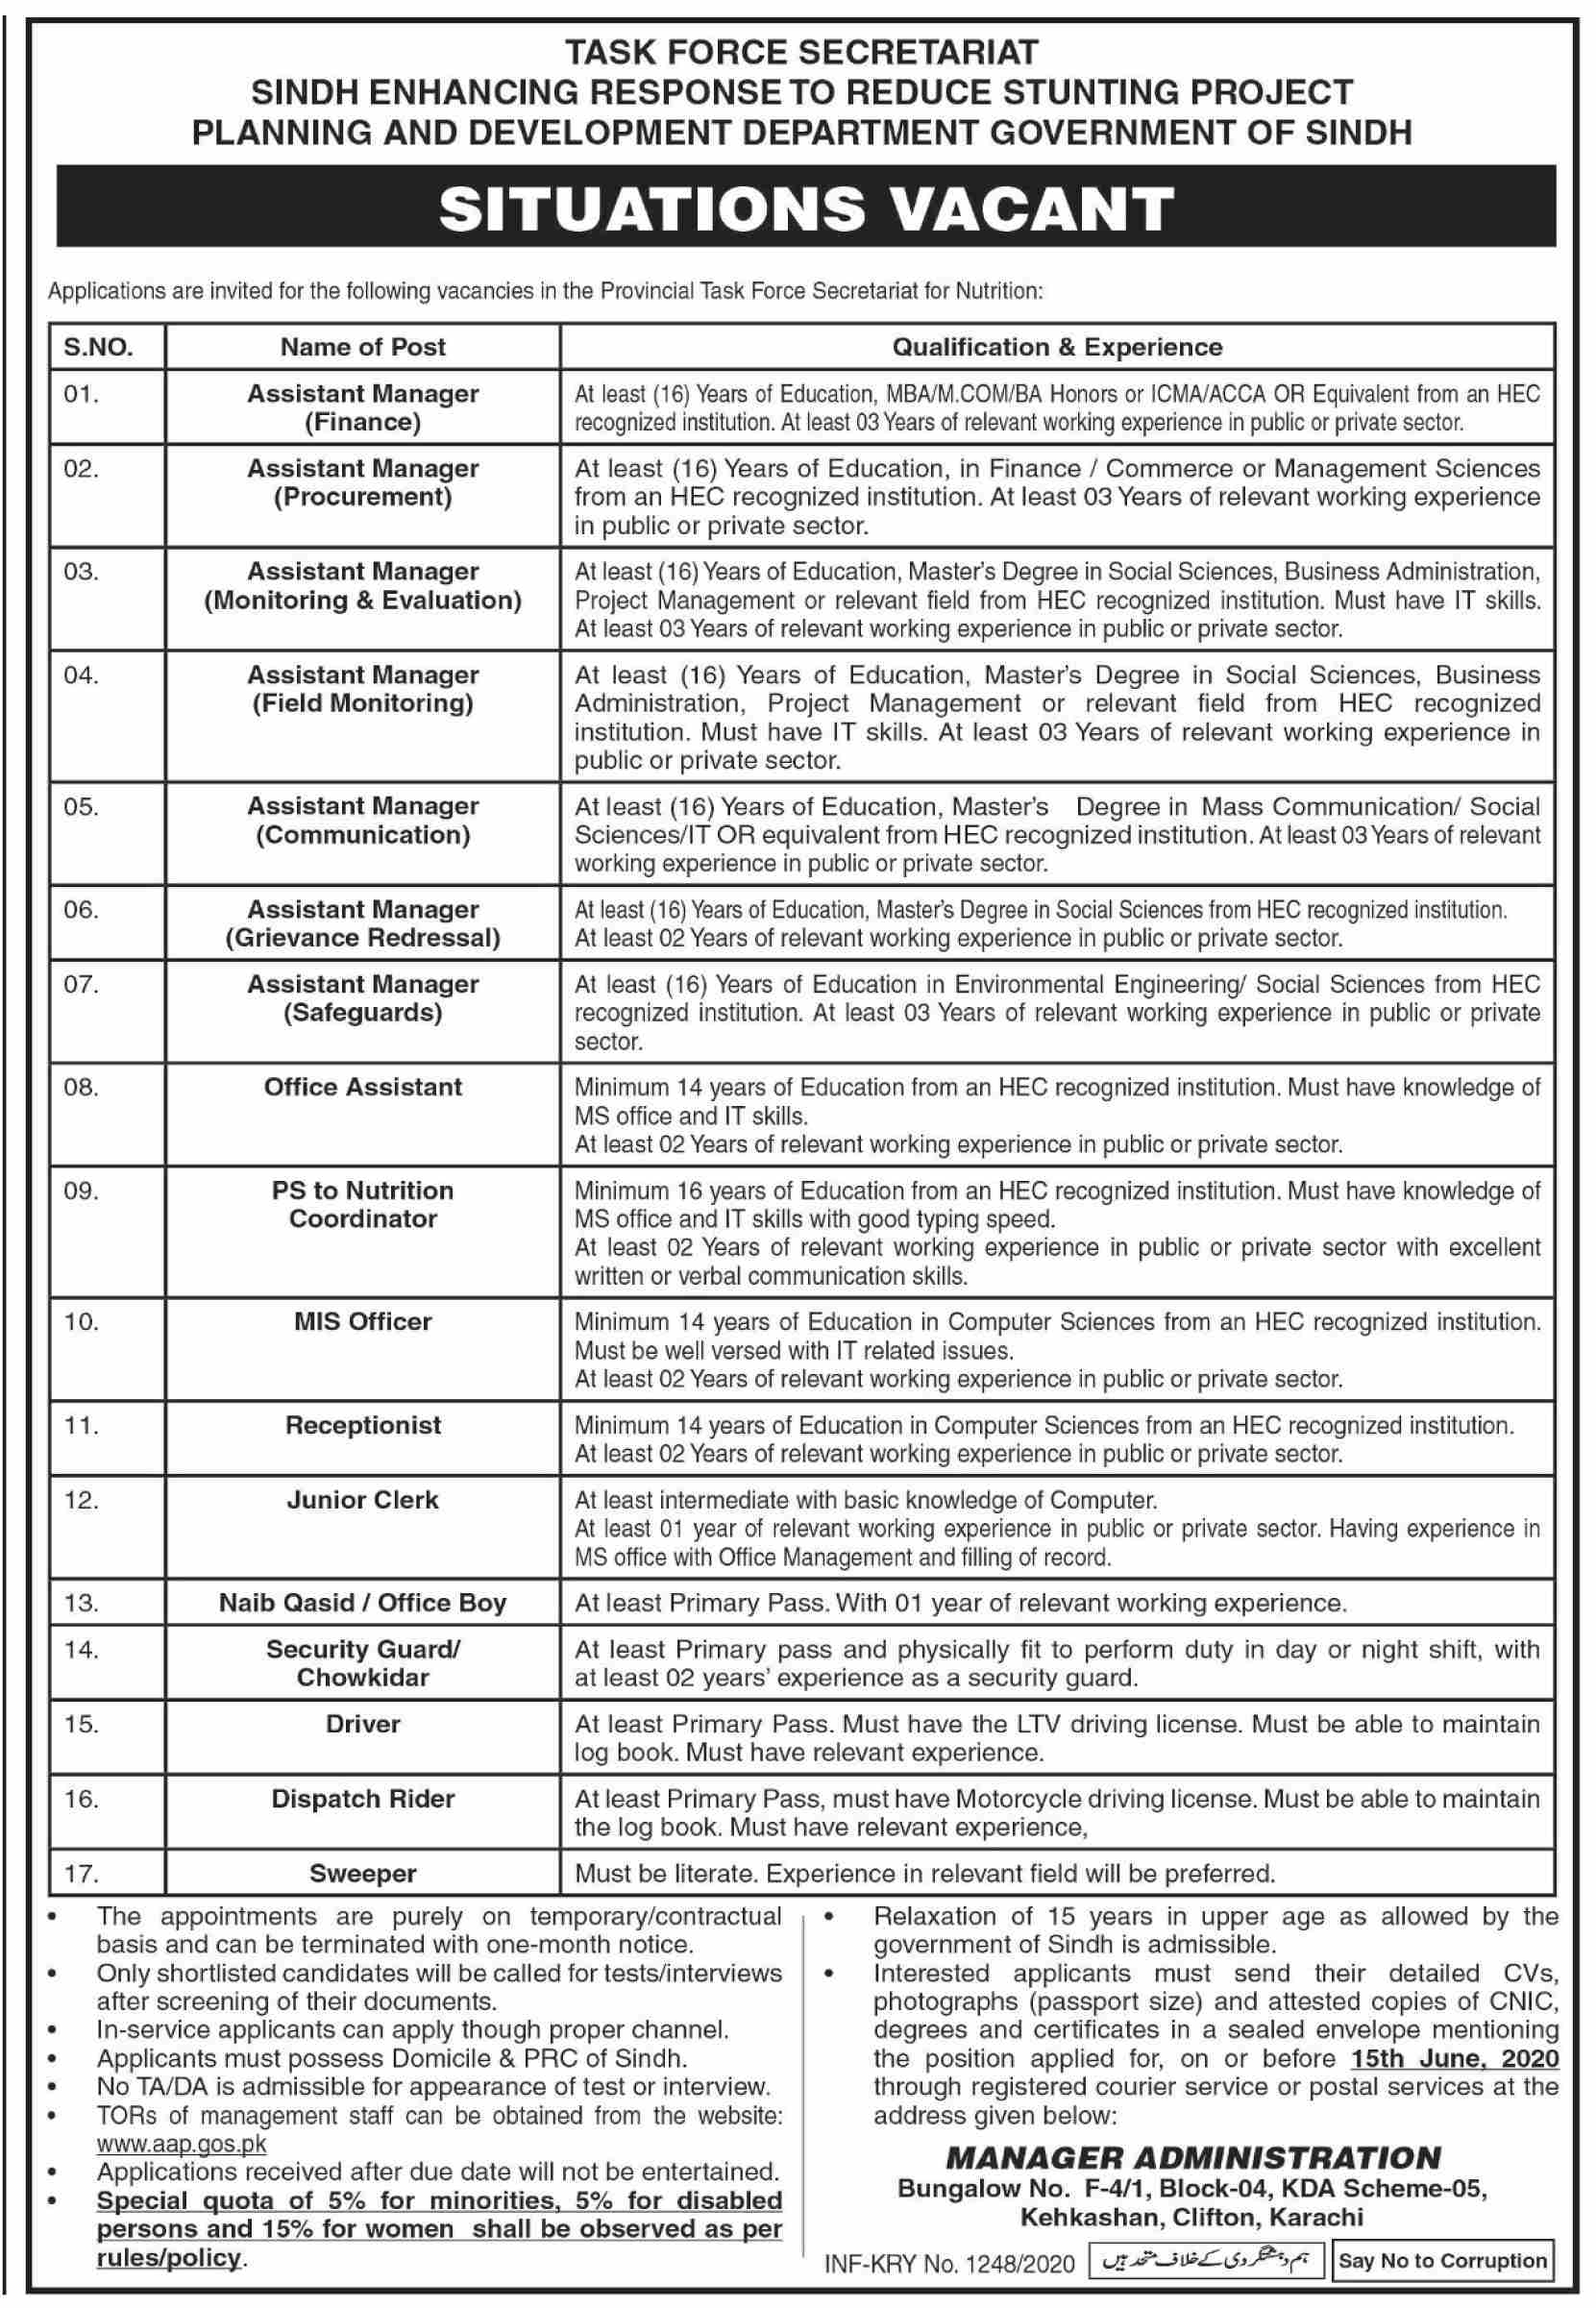 Planning & Development Department jobs newspaper ad for Assistant Manager Finance in Karachi